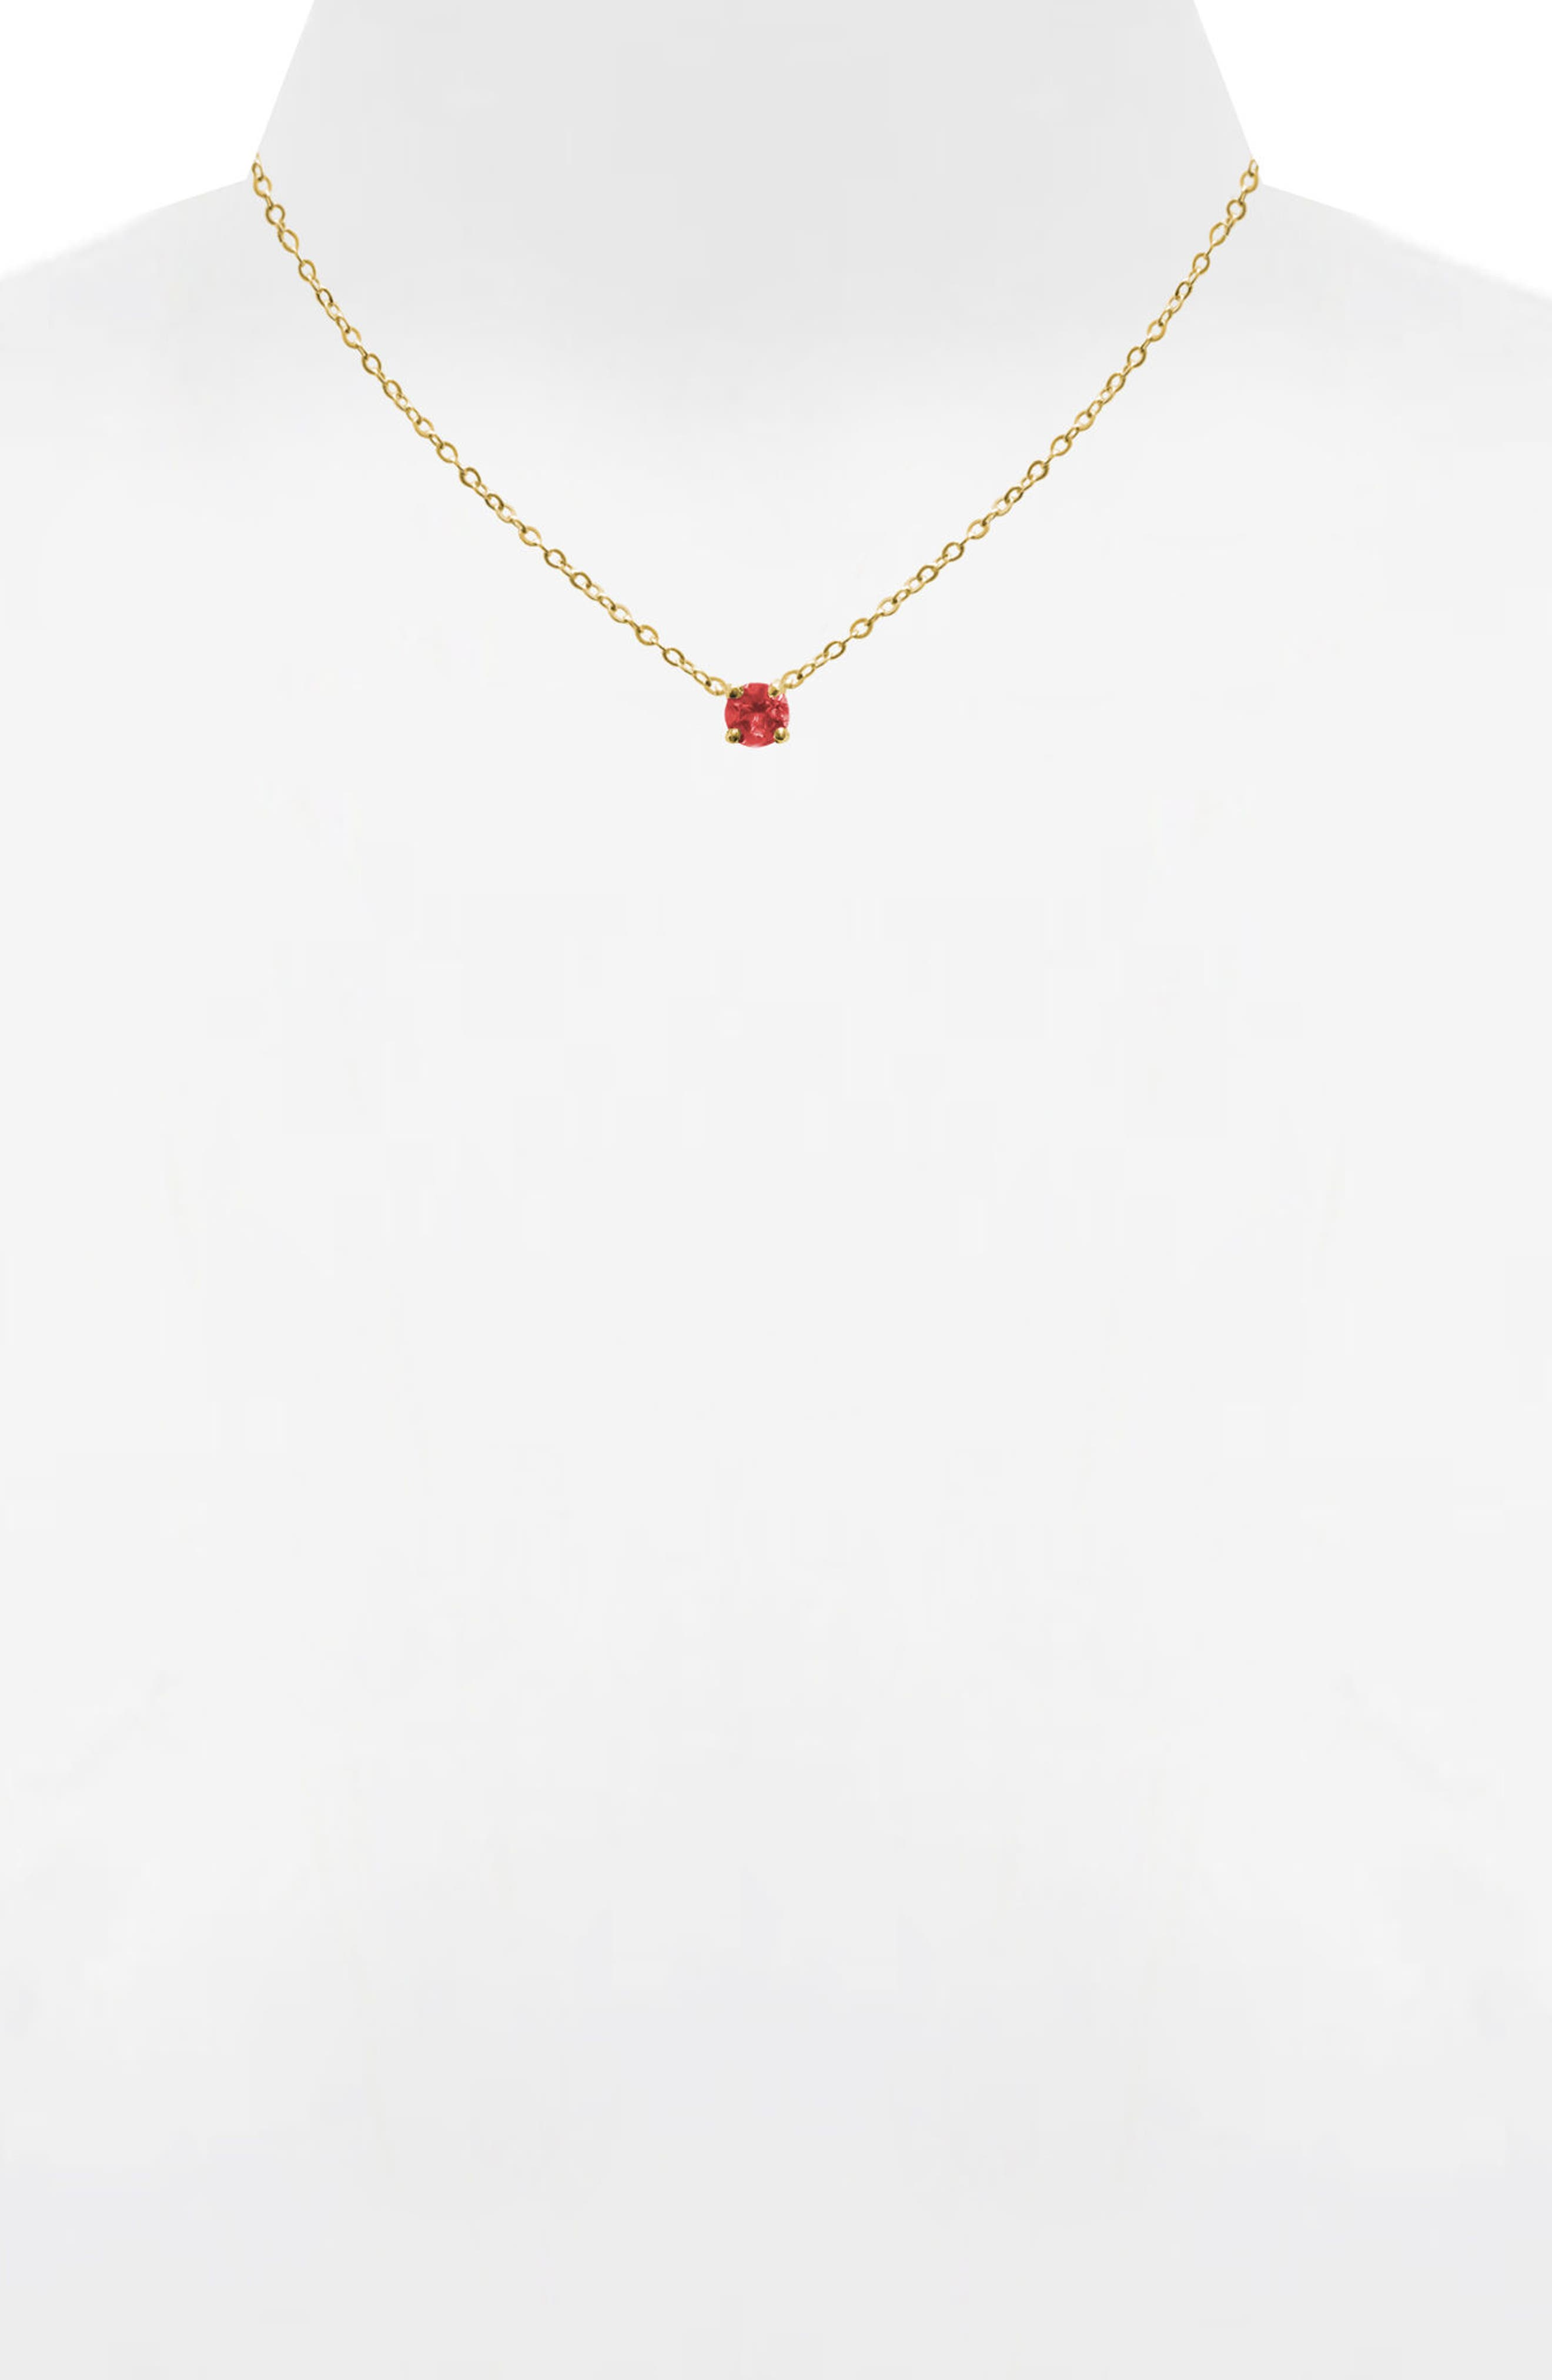 Jane Basch Birthstone Pendant Necklace,                             Alternate thumbnail 2, color,                             Garnet/ January